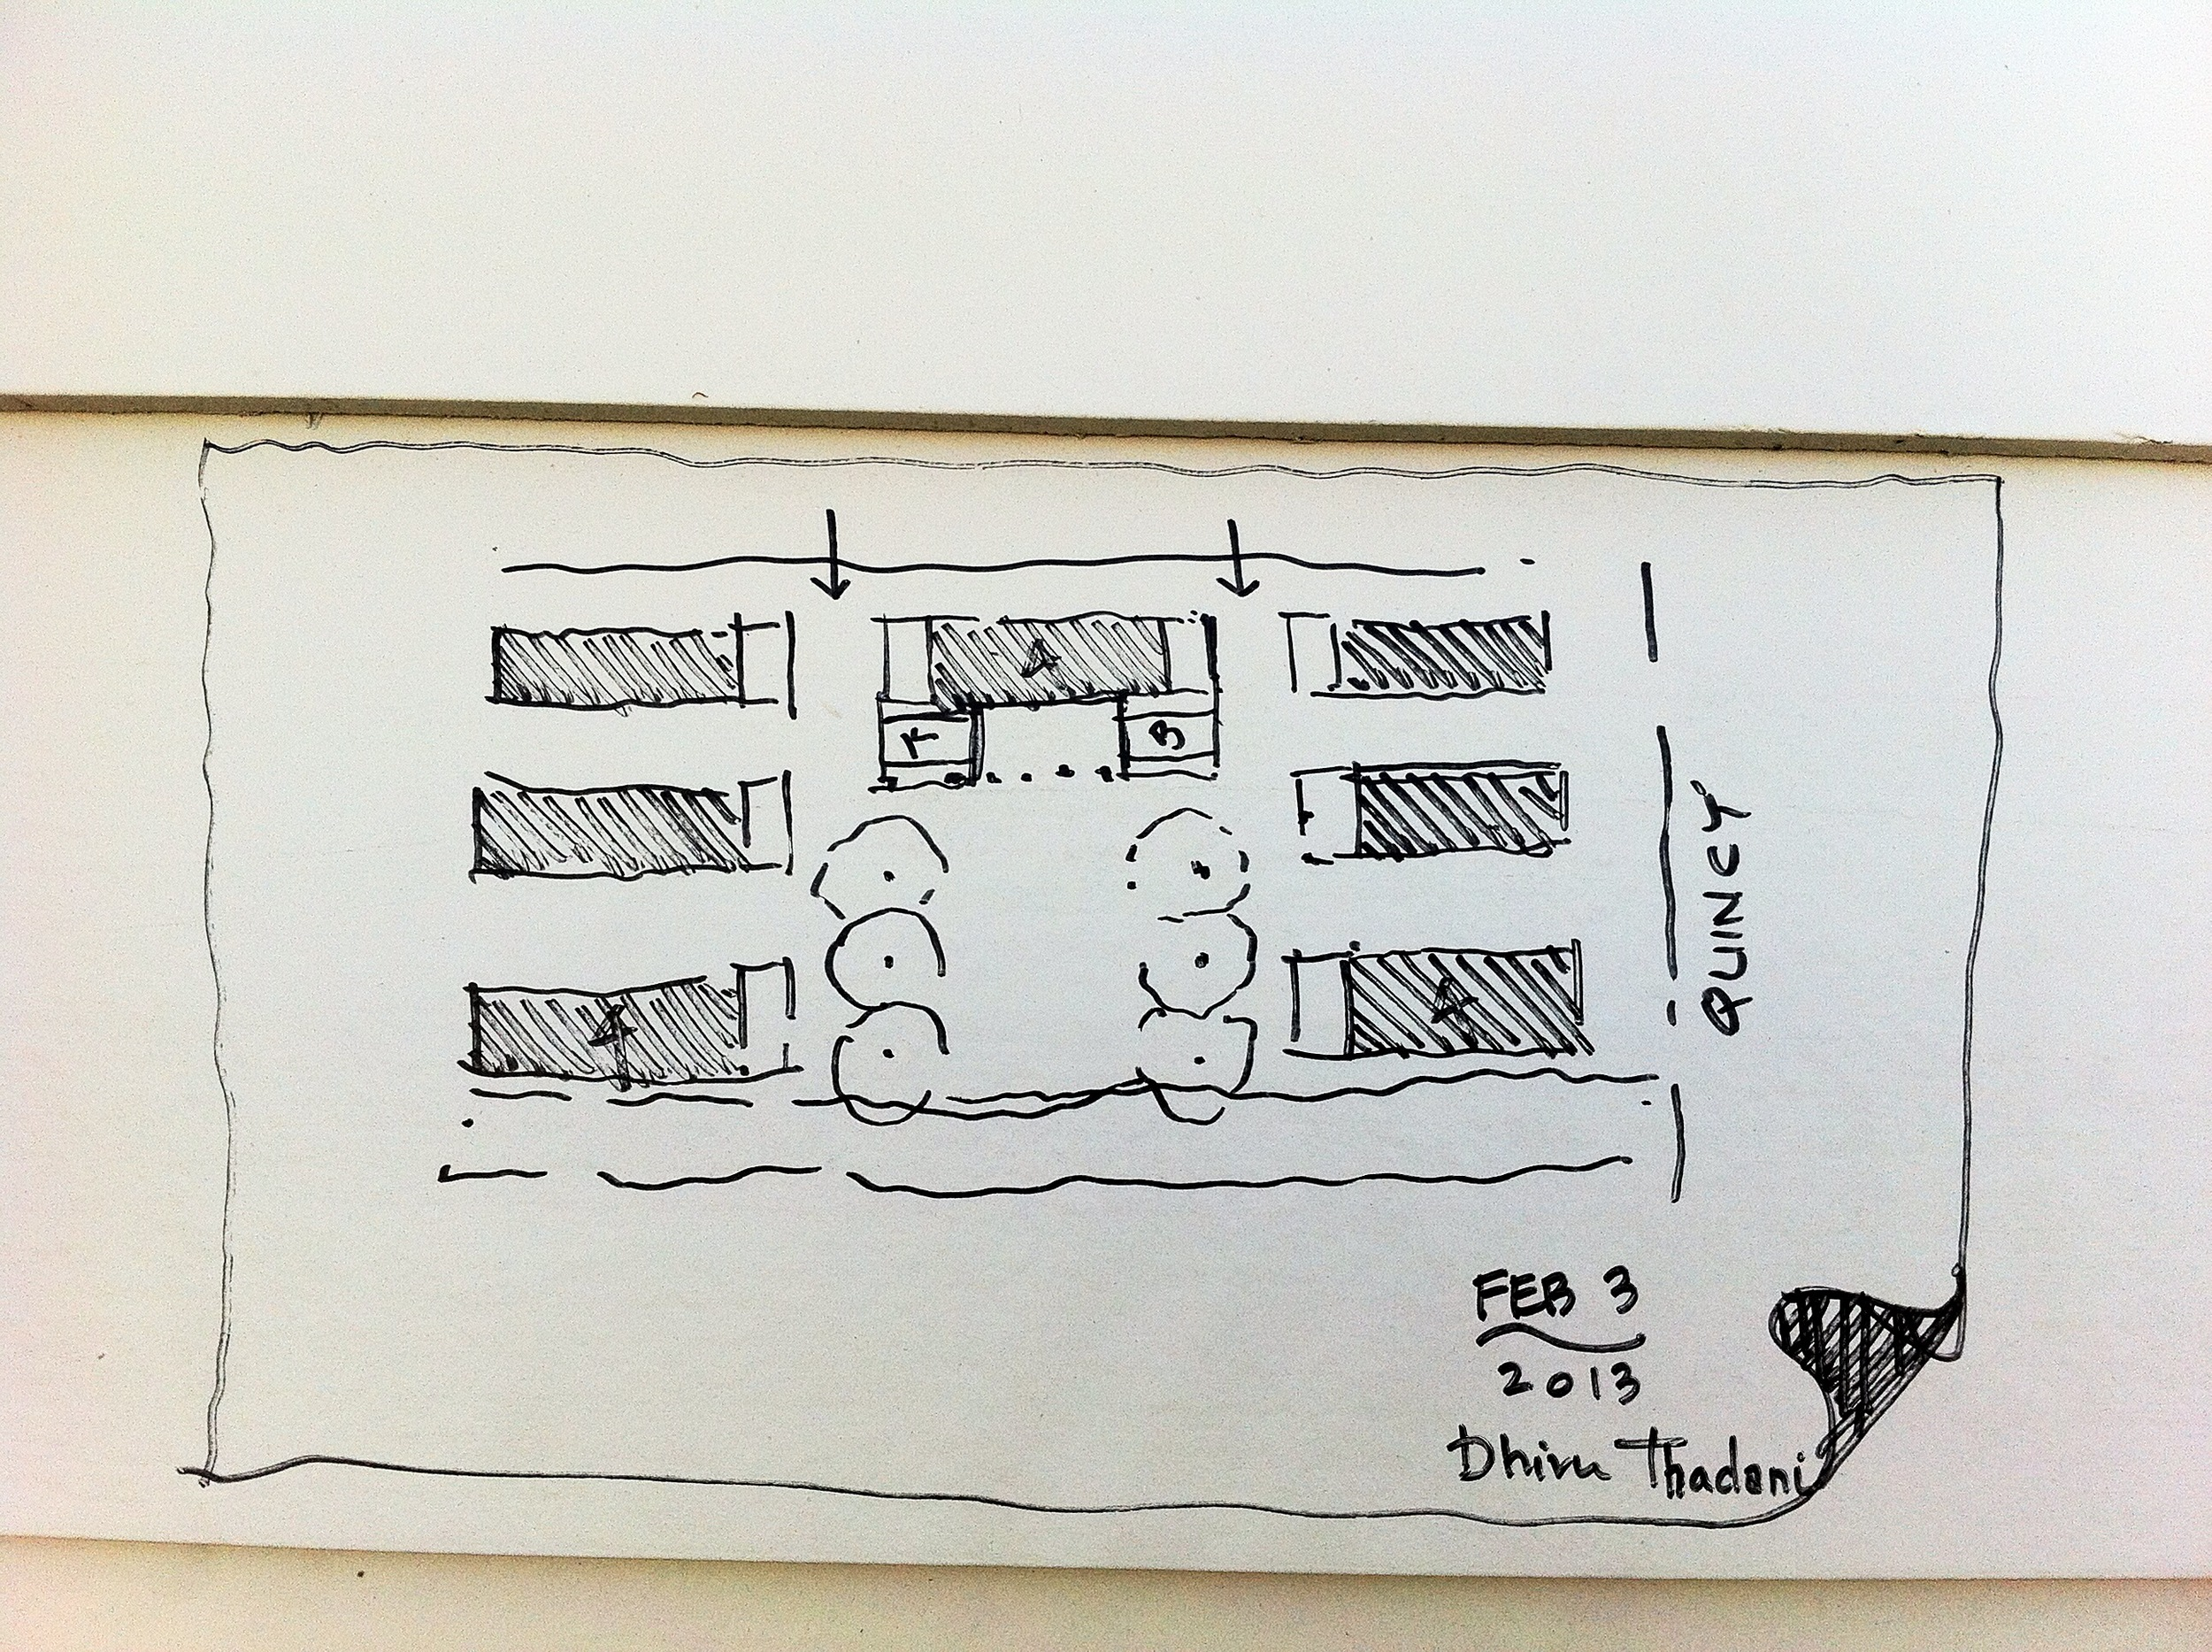 Architect Dhiru Thadani's sketch of the layout for seven cottages.